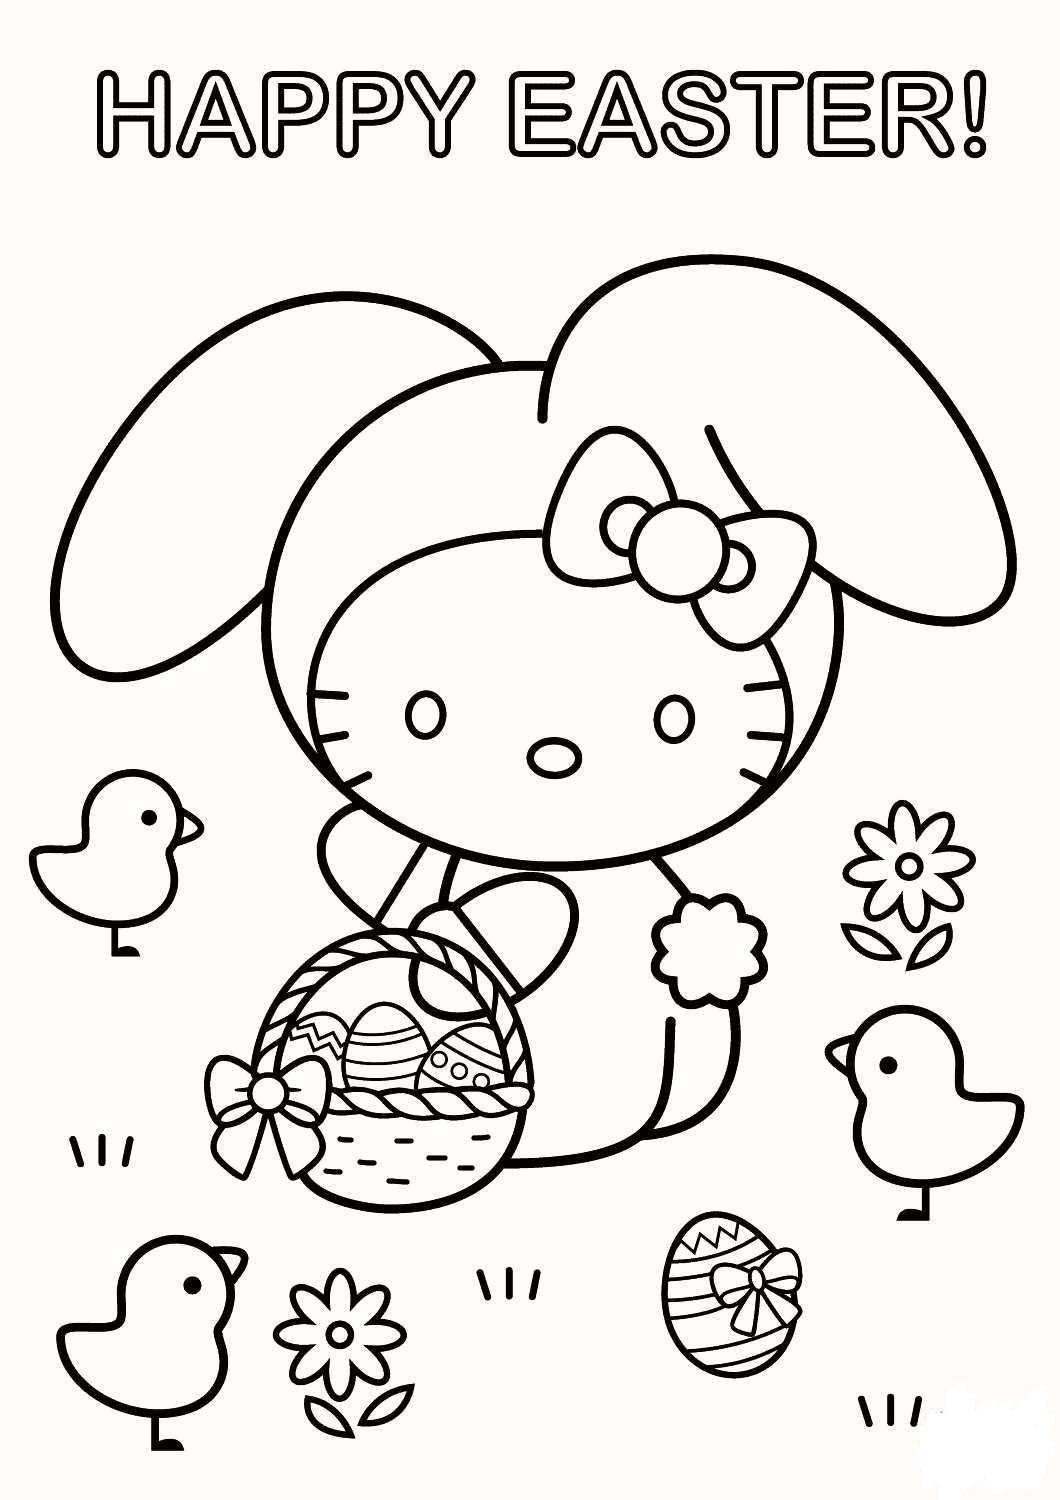 Click to see printable version of Hola Kitty con Huevo de Pascua Coloring page